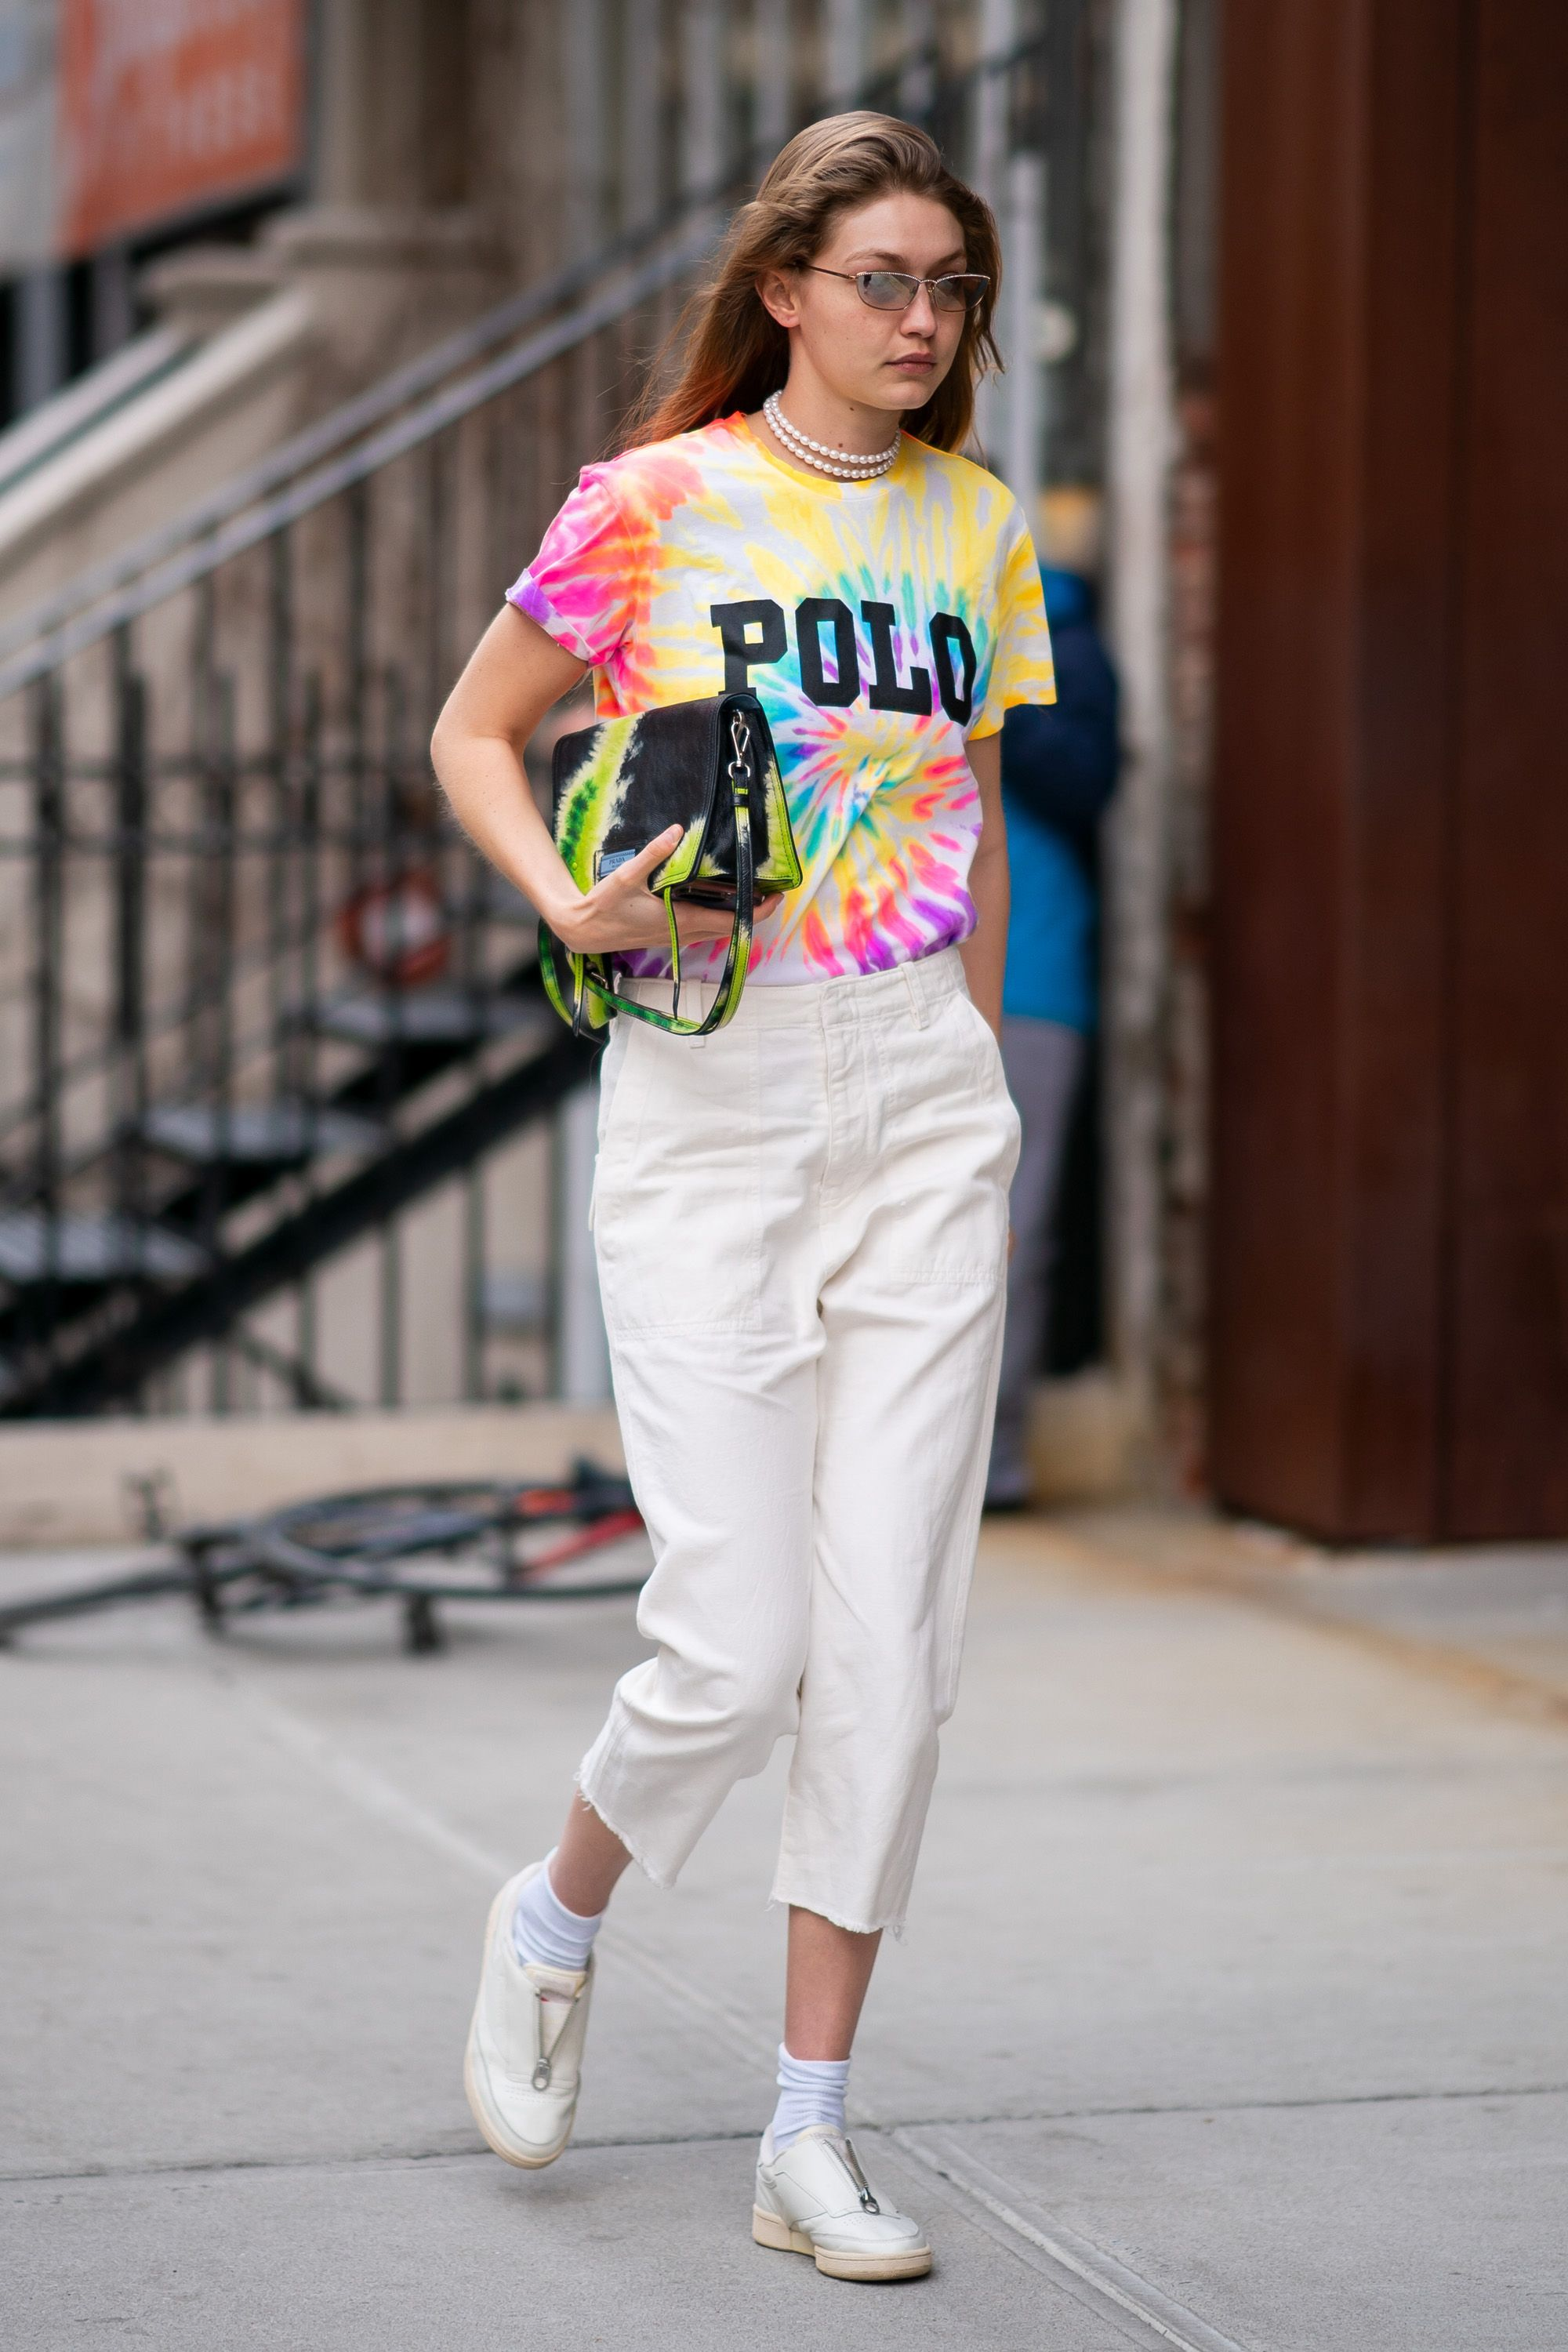 f09f50fd Model #GigiHadid wears a Polo Ralph Lauren tie-dye tee from Spring 2019  while in New York this past weekend. #PoloRLStyle